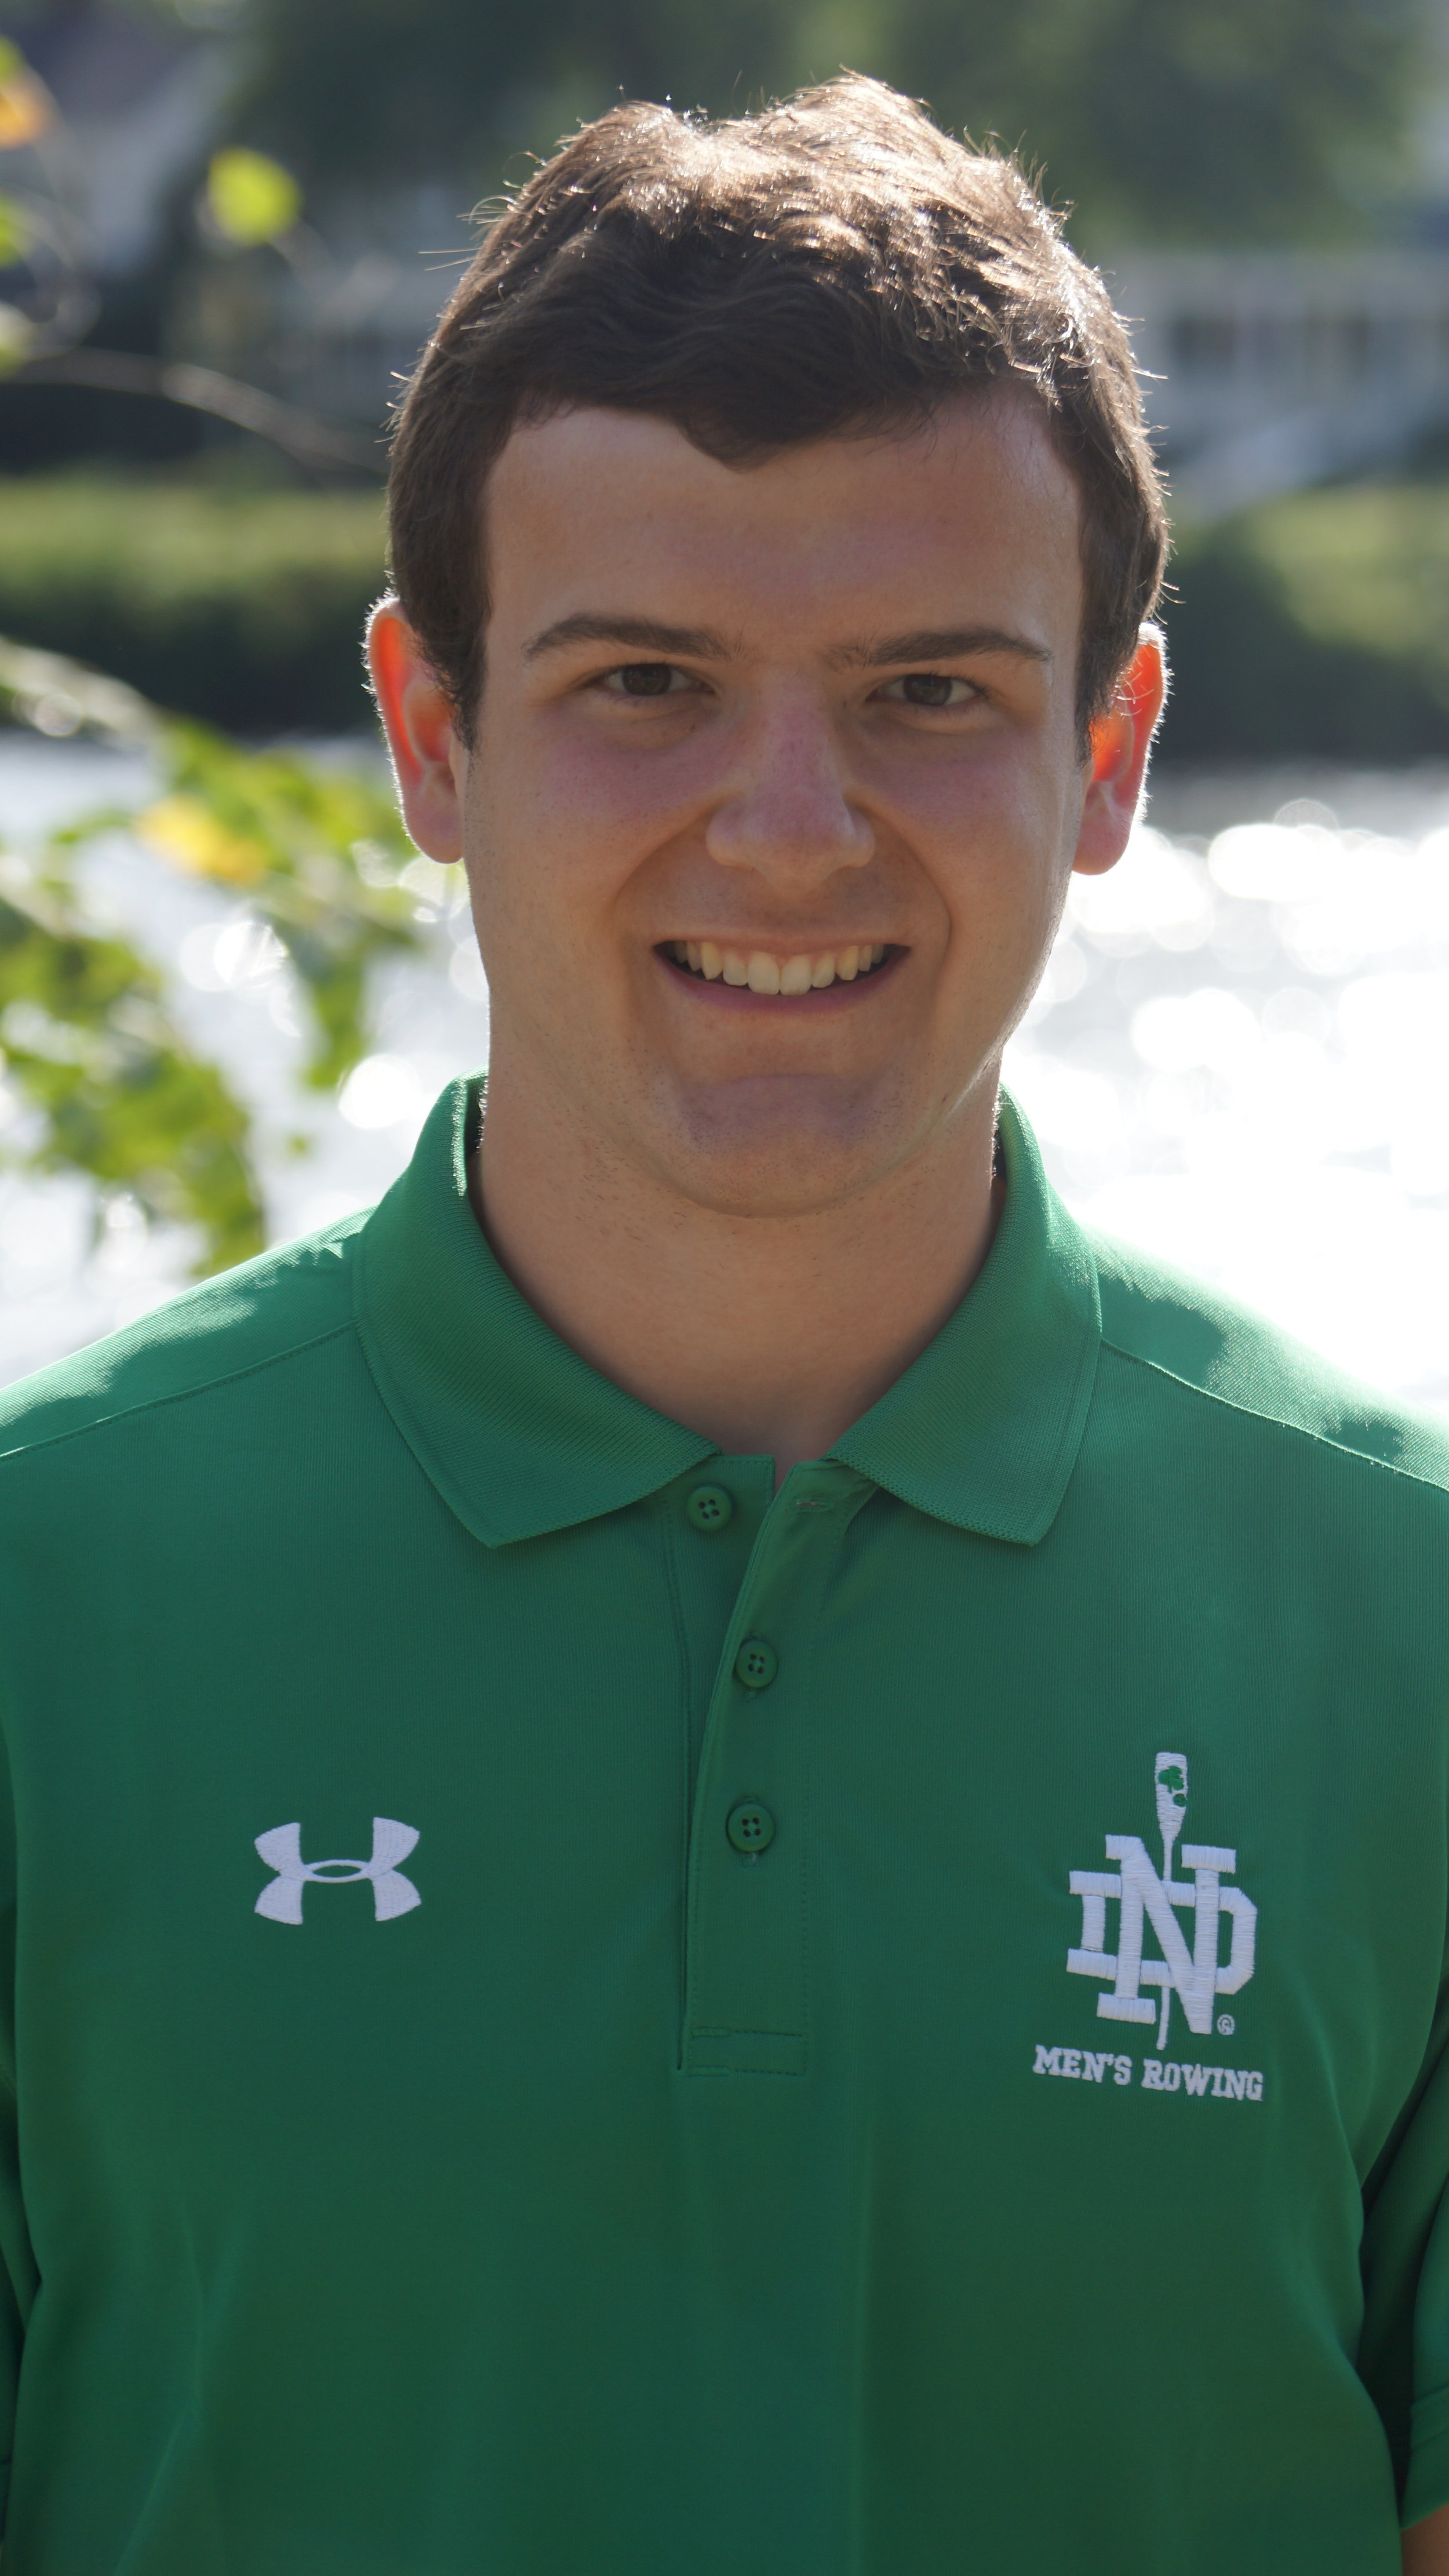 Graduate Assistant- Andrew Nemecek - Andrew Nemecek rowed at Notre Dame under Coach Mike from 2015 to 2019. While at Notre Dame, he raced at the Head of the Charles, won gold in the V4+ at the MACRA championships, and was a member of the boat that won the inaugural 3V event at the ACRA national championships in 2019.Andrew graduated from Notre Dame in 2019 with a degree in computer engineering and is back to pursue his J.D. at the Law School.